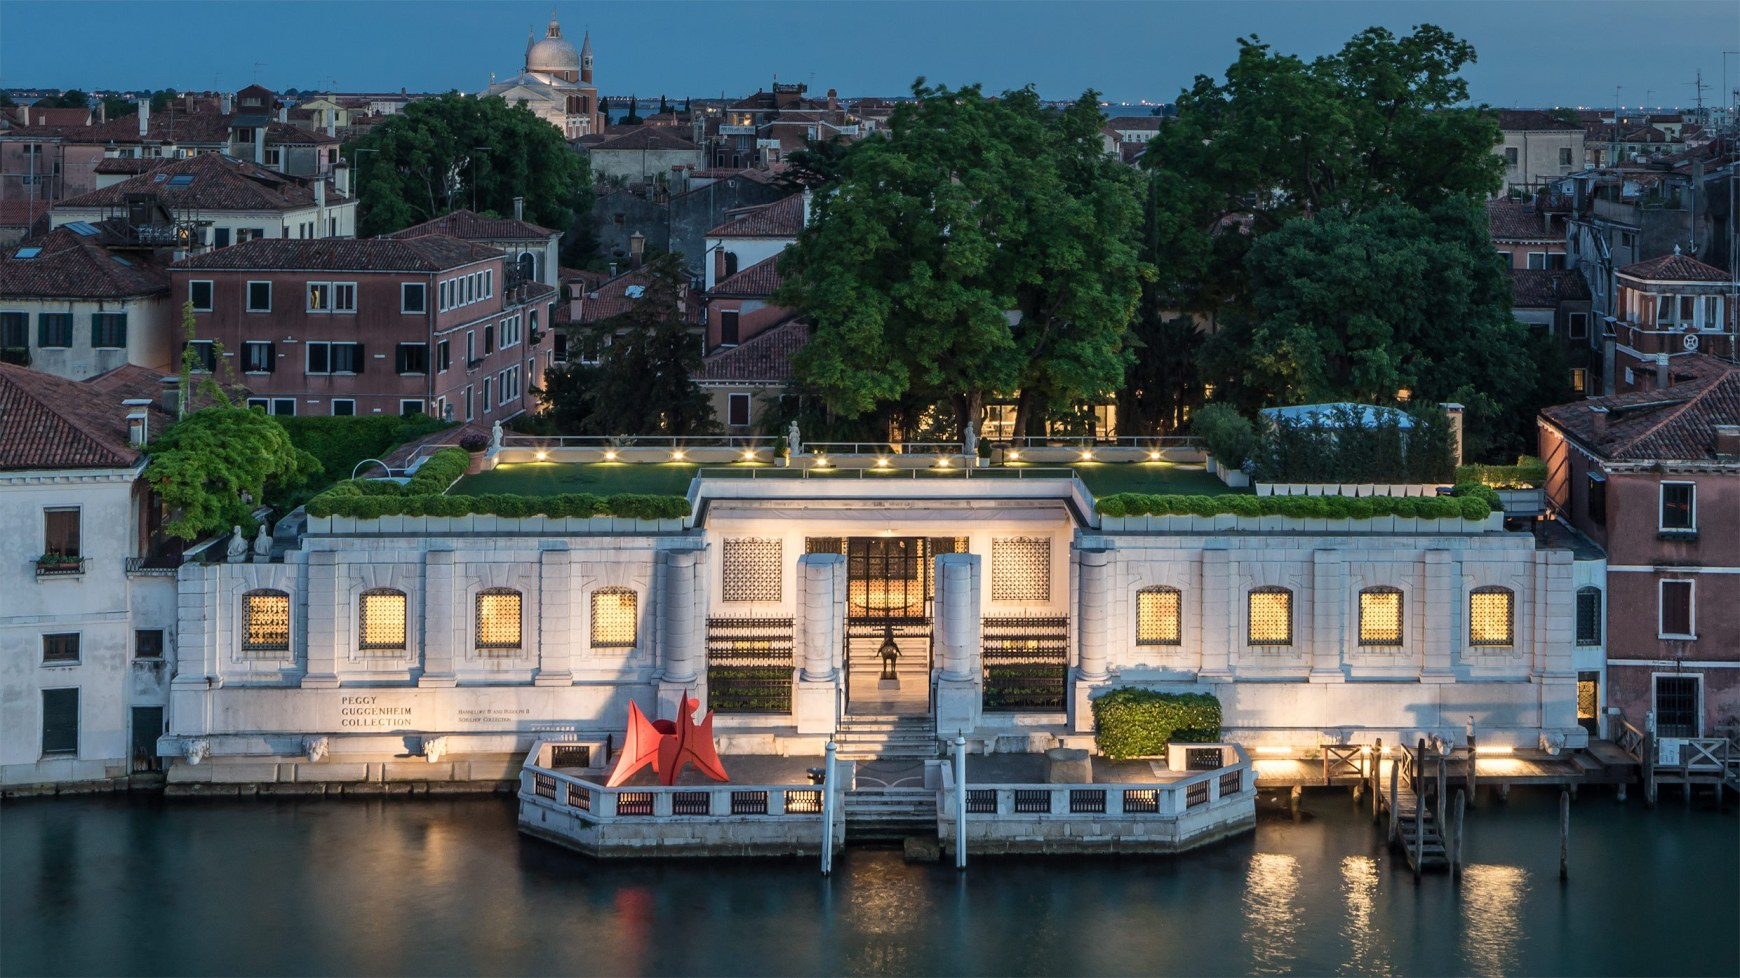 The Peggy Guggenheim Museum in Venice, photo from  Guggenheim